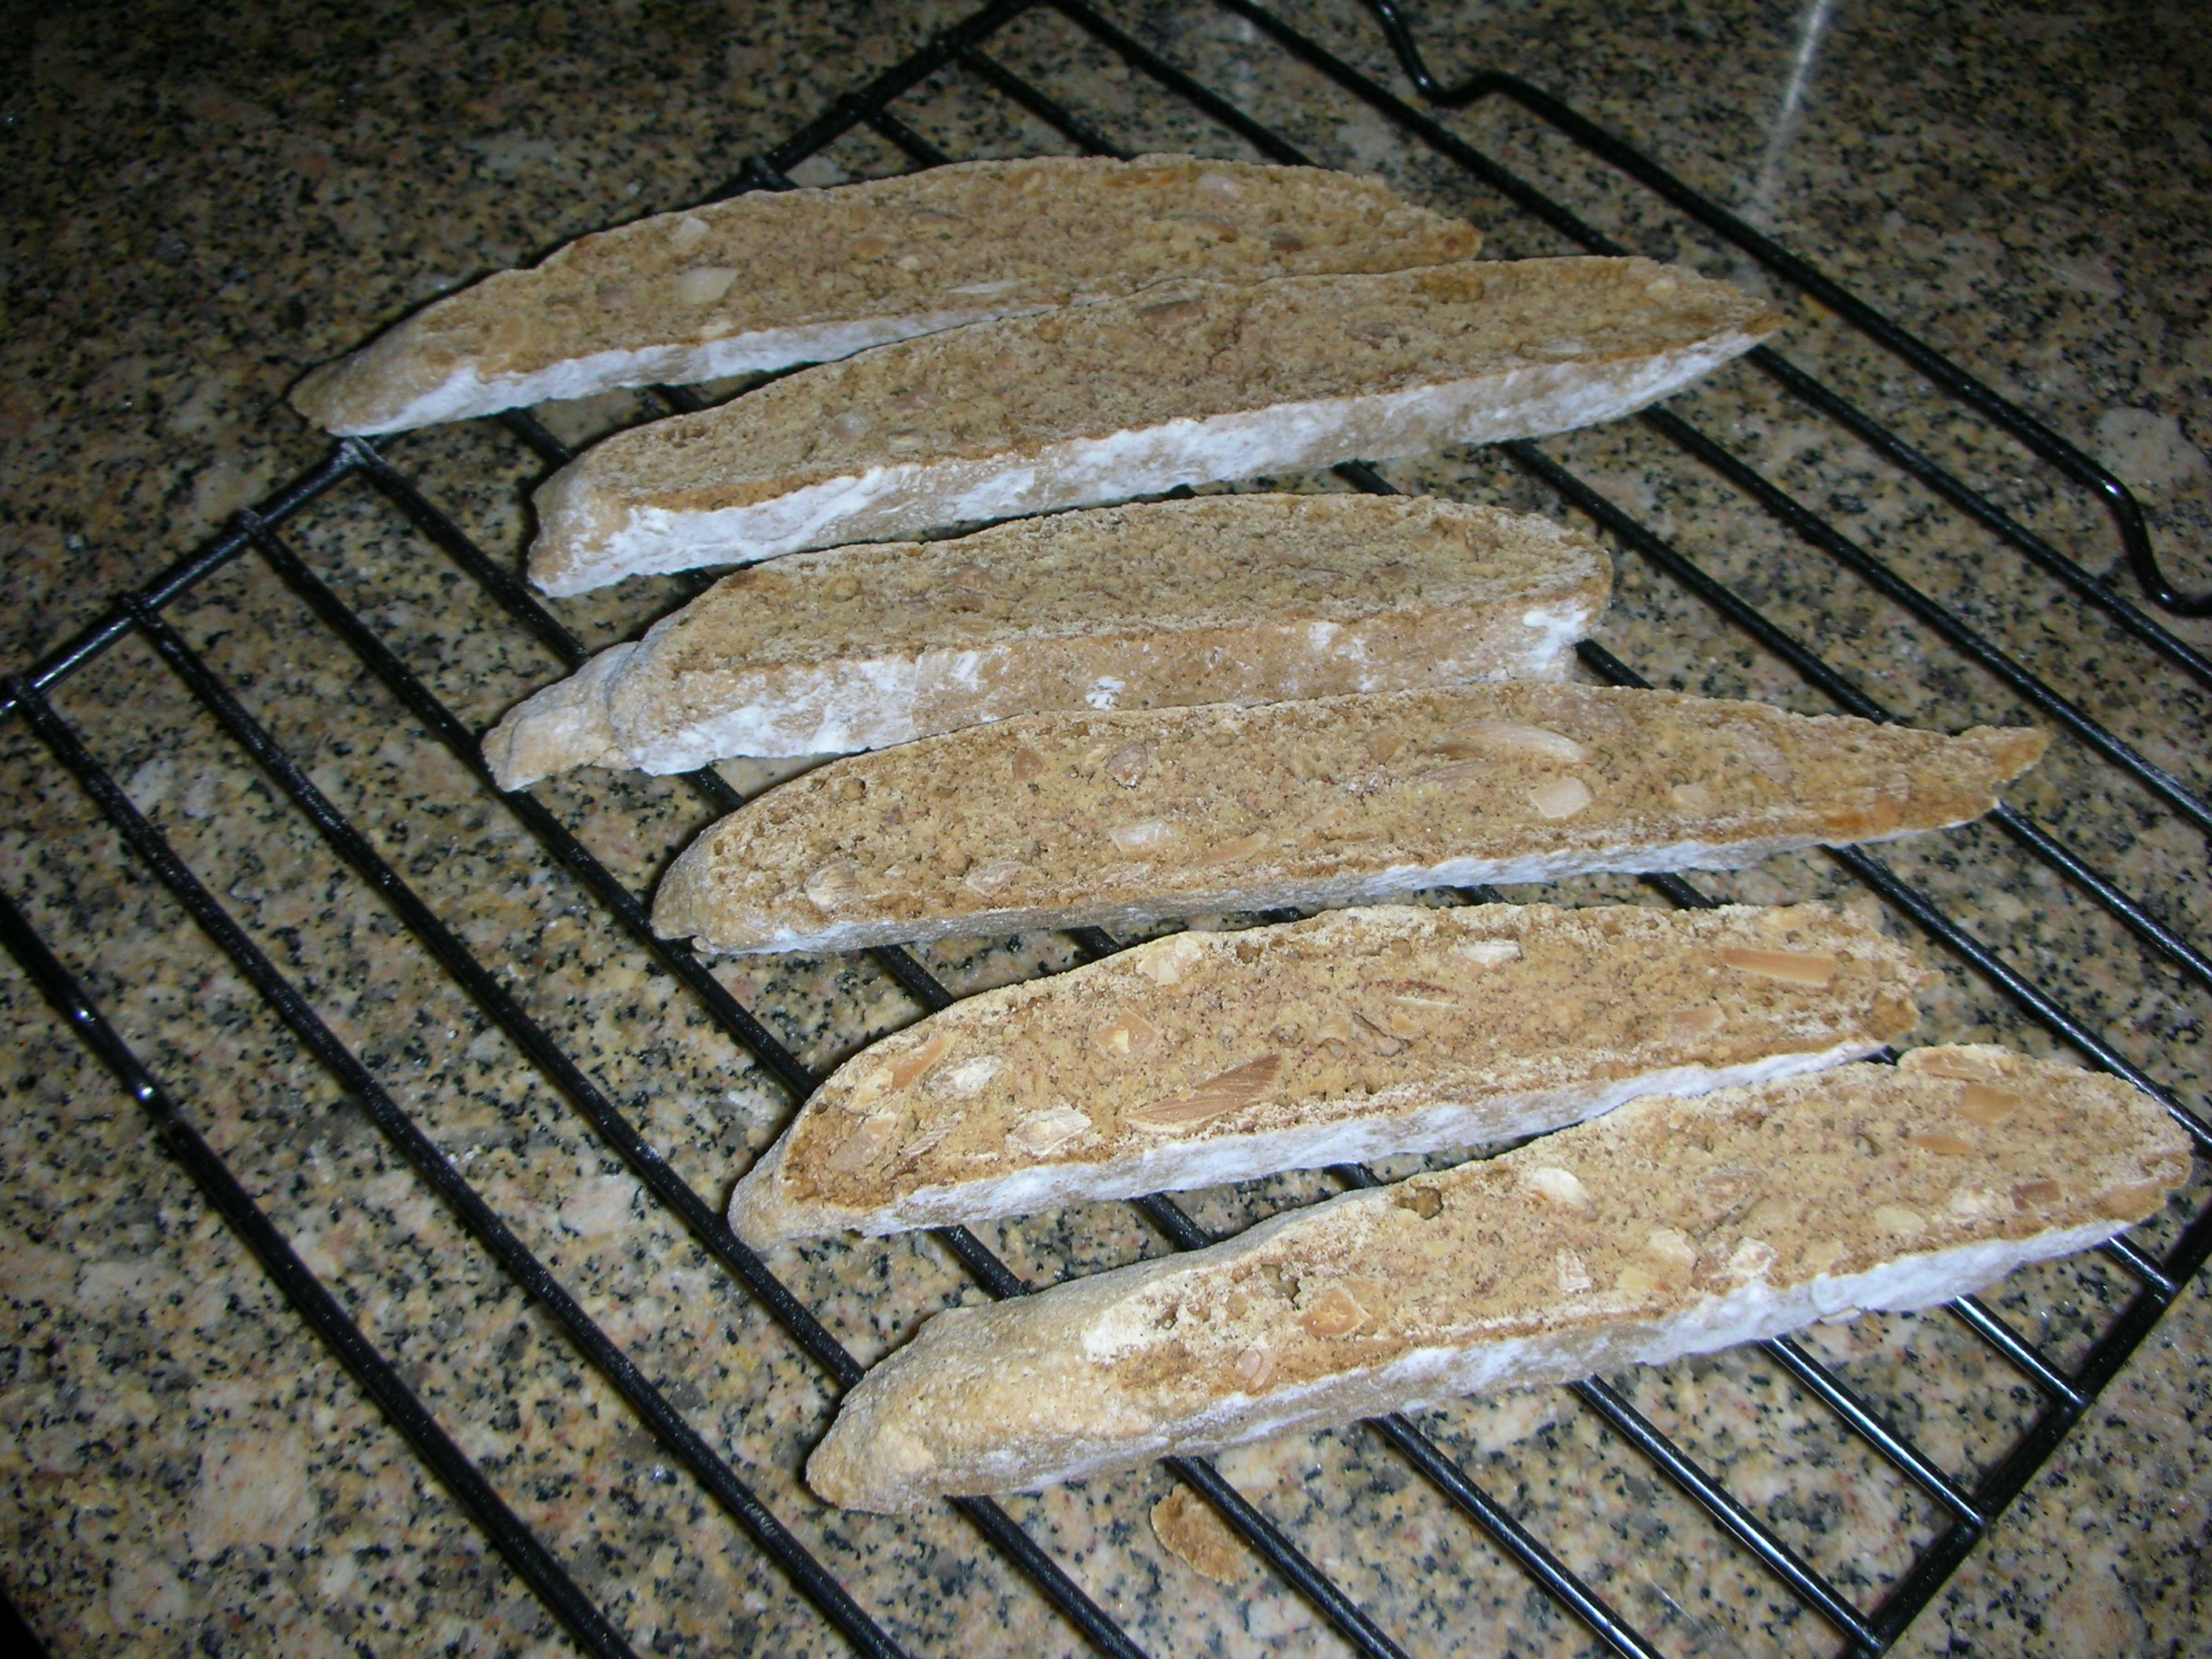 Tuscan almond biscotti second baking sliced